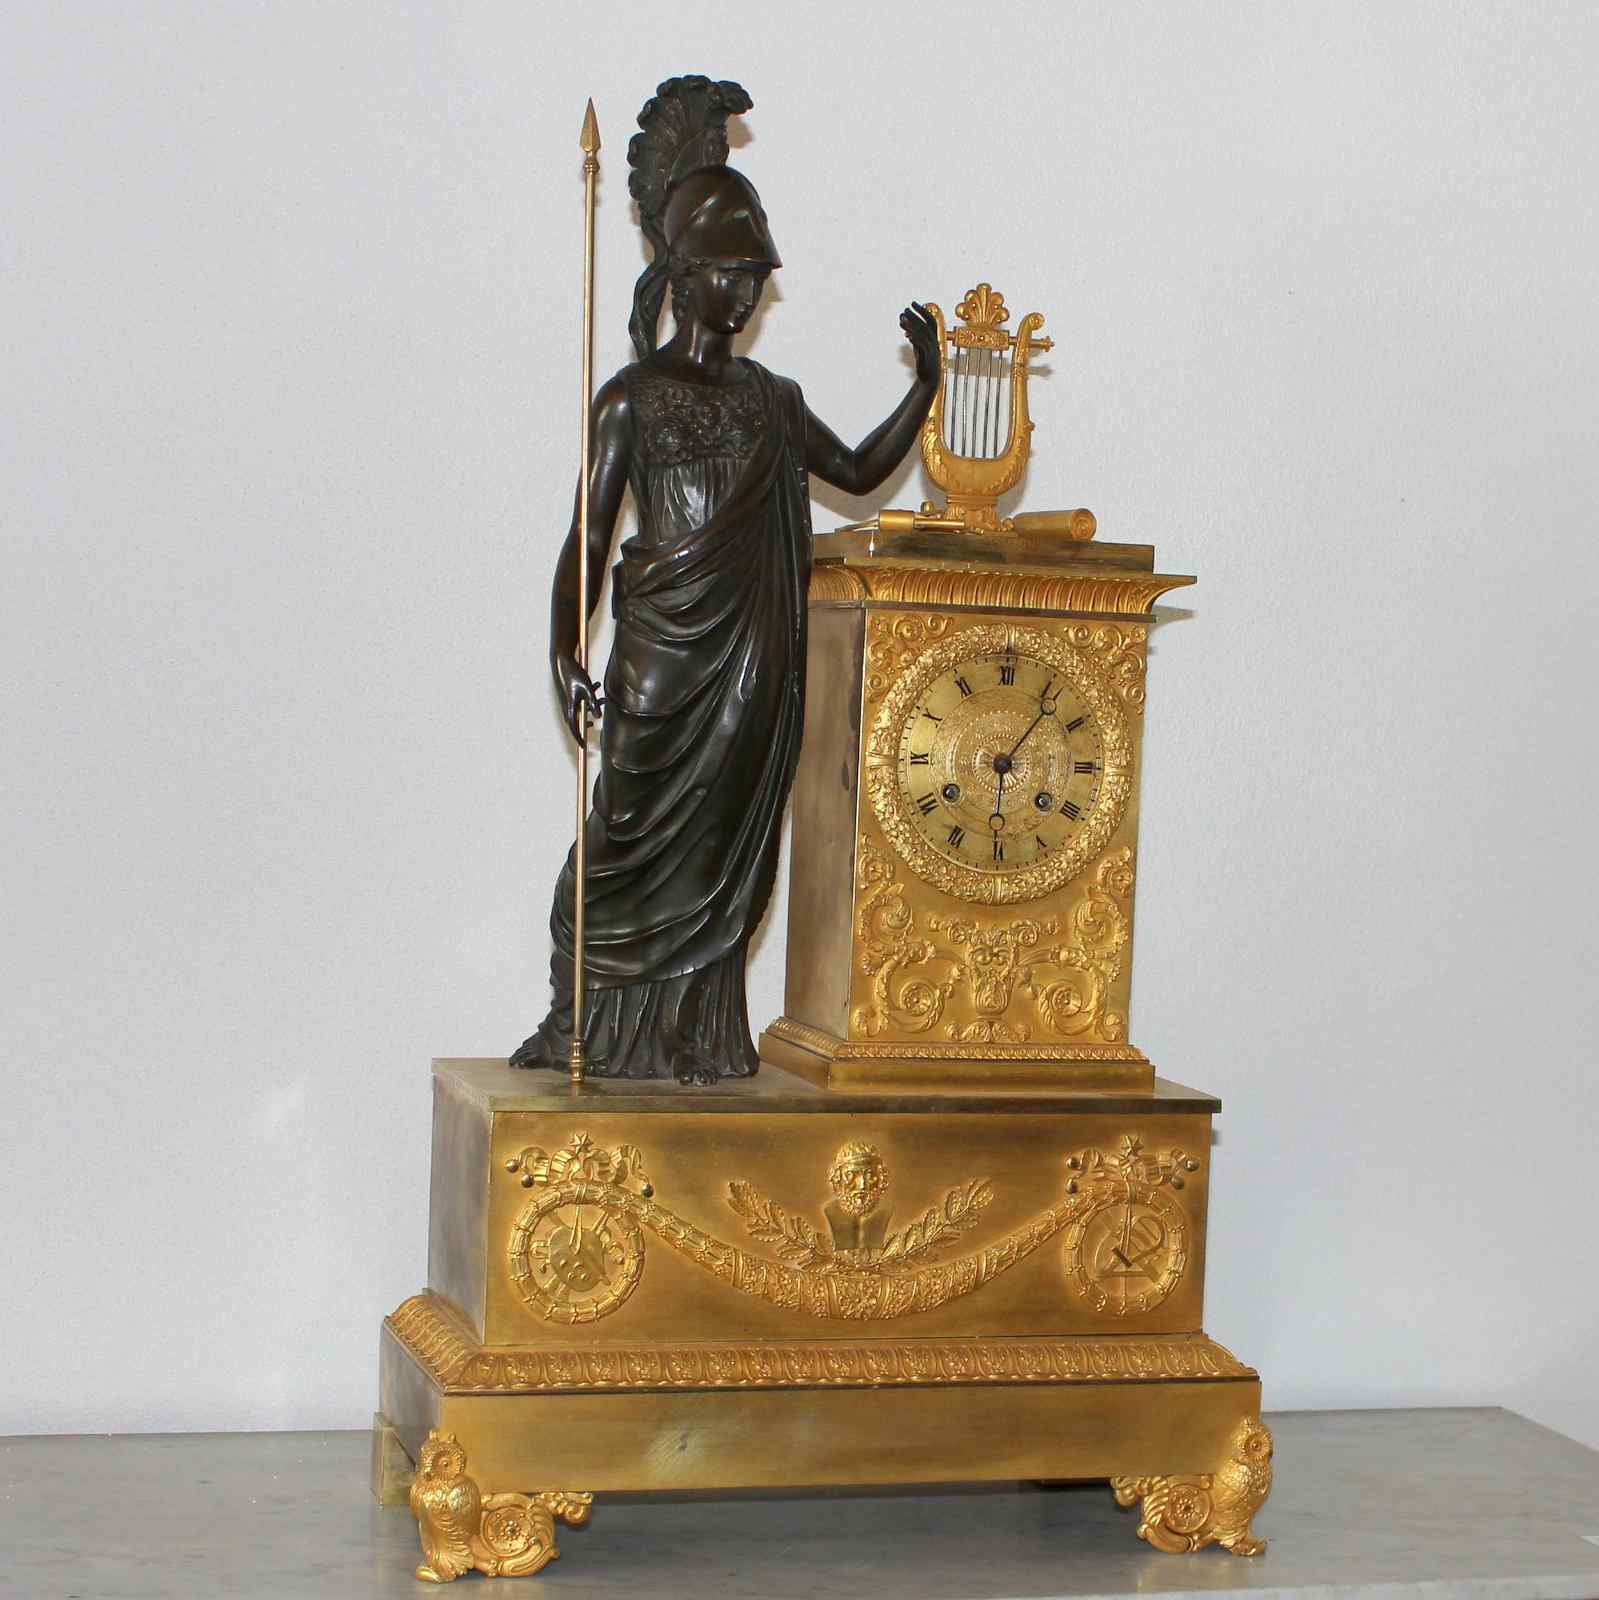 French antique clock in gilded bronze and brown bronze